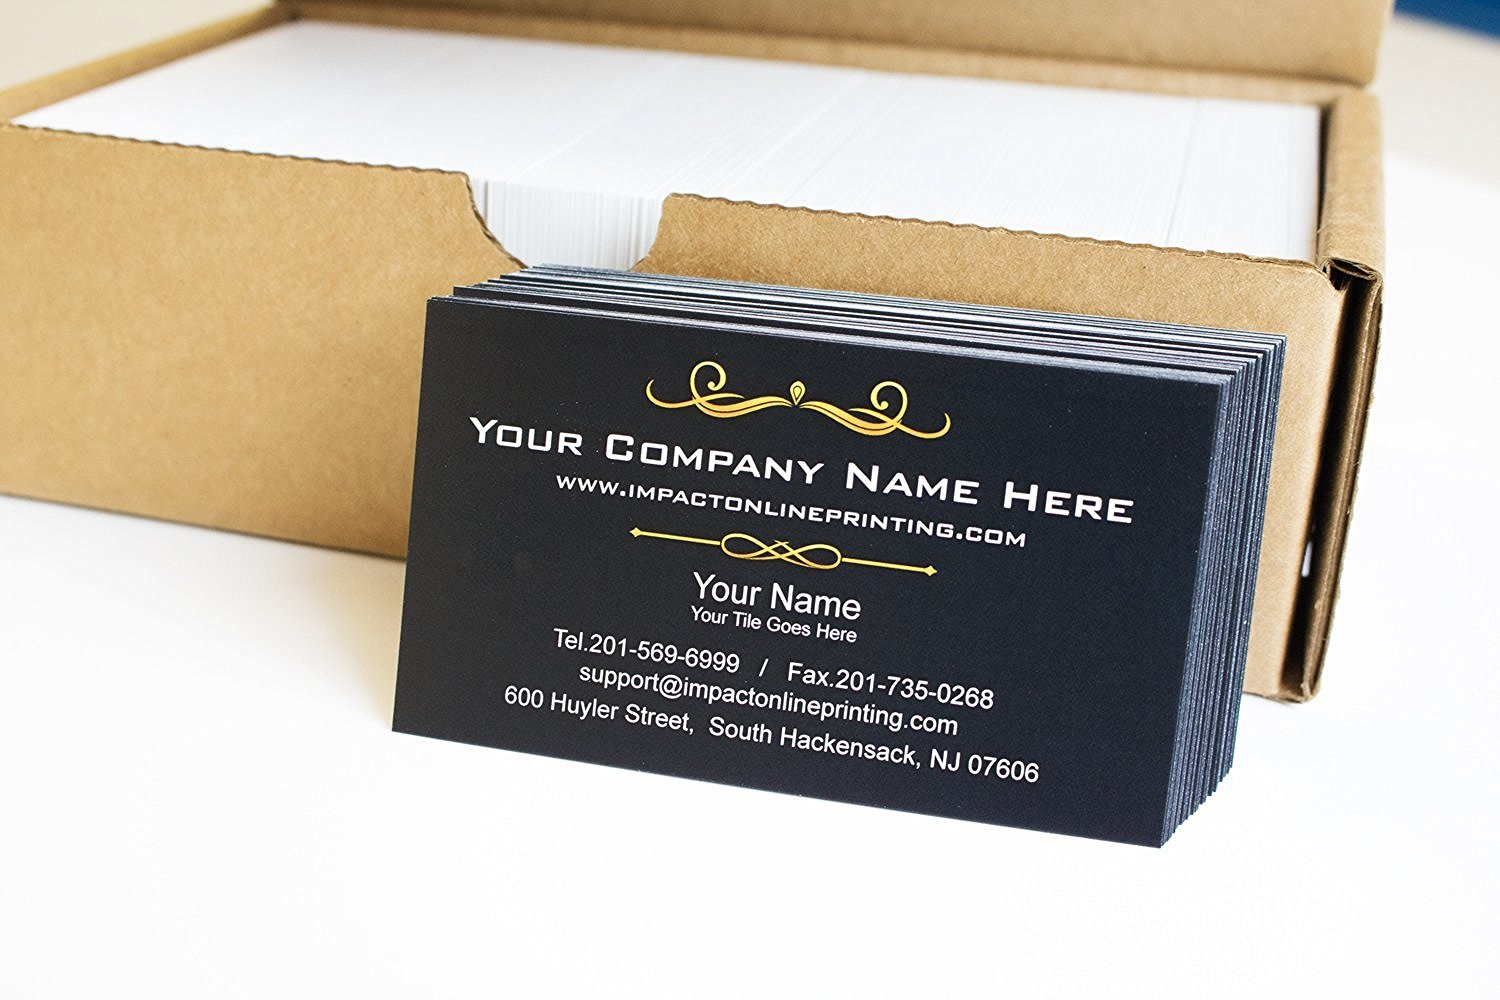 Business cards adp press business cards printed the way you want reheart Gallery